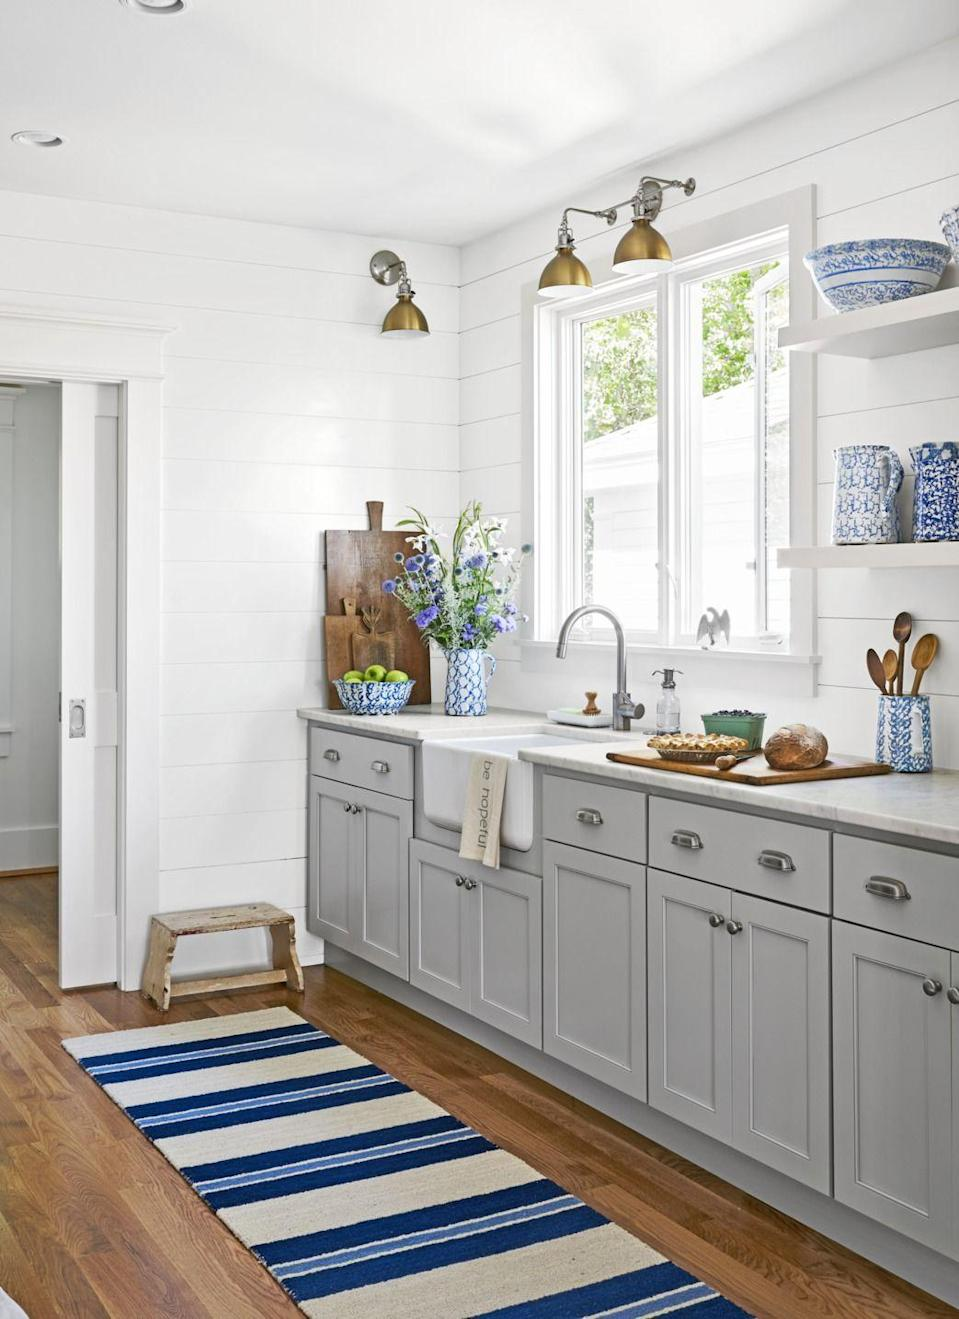 "<p>The year 2020 is not about being matchy-matchy—and that goes double for your heavy metals. Choose a nice nickel for your knobs and then go with a cool brass or matte white for your faucet. Choose a whole different metal for your lighting fixtures. <br></p><p><a class=""link rapid-noclick-resp"" href=""https://www.amazon.com/s?k=kitchen+rugs&ref=nb_sb_noss&tag=syn-yahoo-20&ascsubtag=%5Bartid%7C10050.g.3988%5Bsrc%7Cyahoo-us"" rel=""nofollow noopener"" target=""_blank"" data-ylk=""slk:SHOP KITCHEN RUGS"">SHOP KITCHEN RUGS</a></p>"